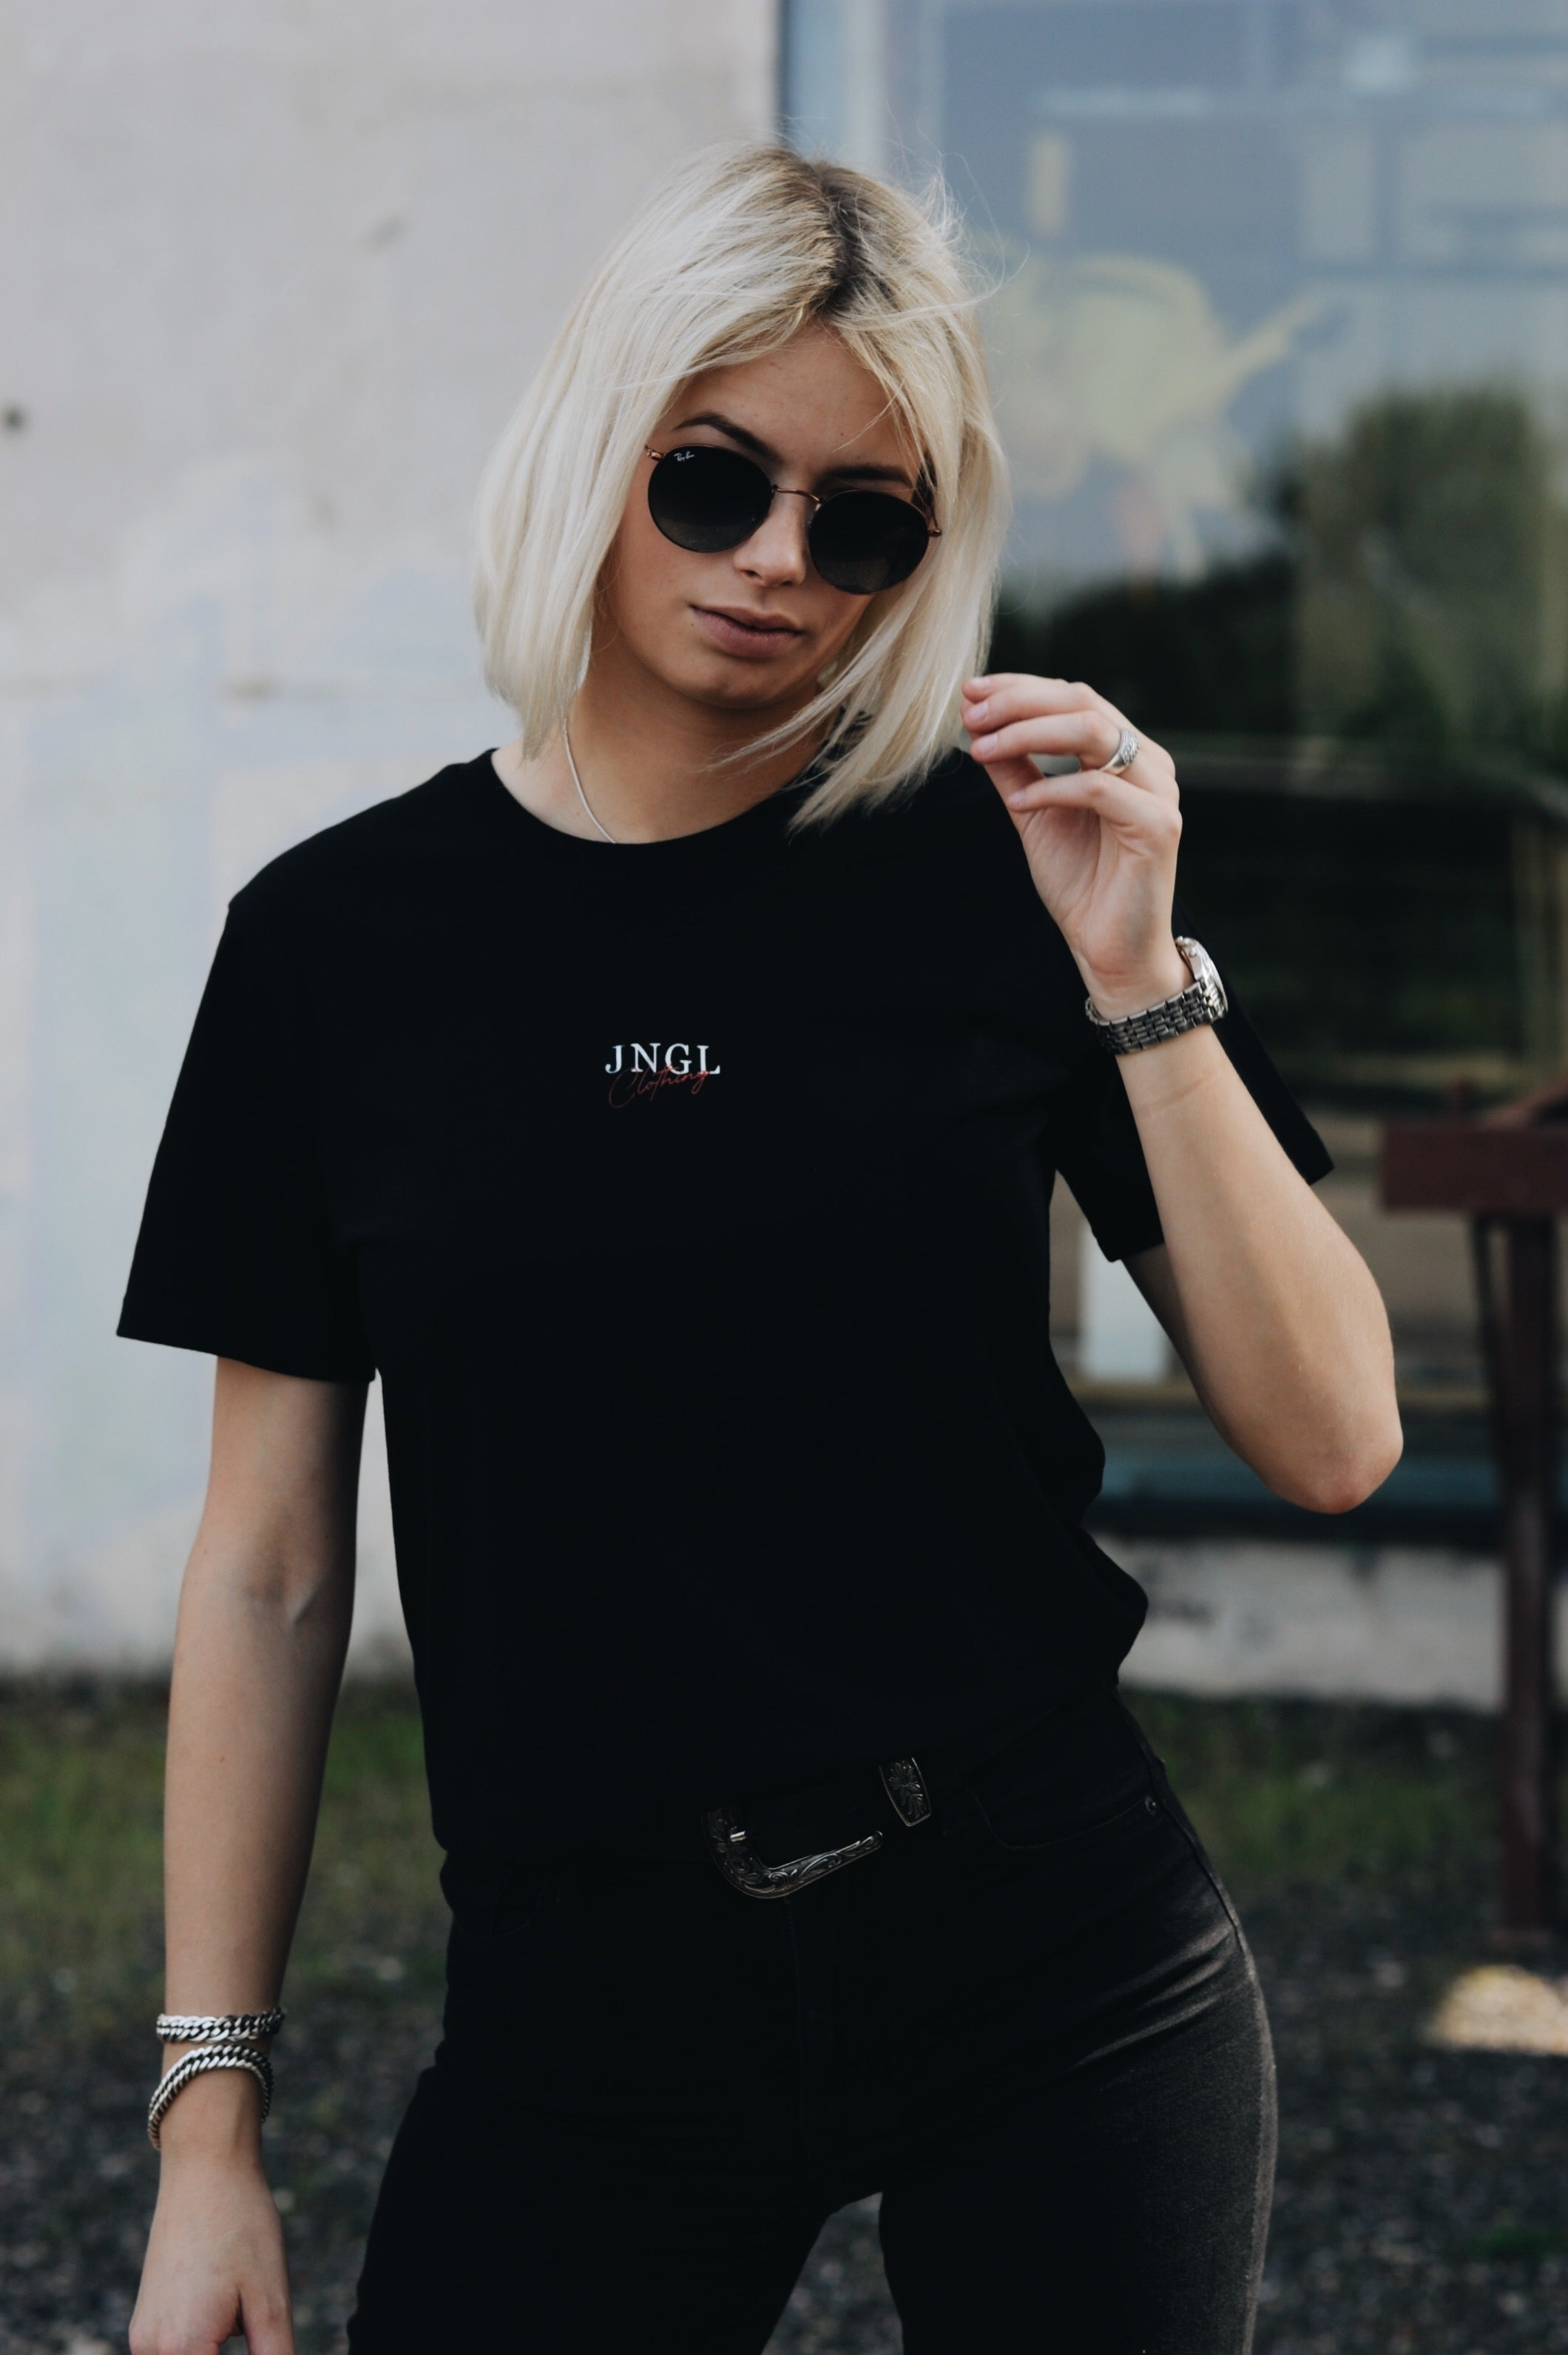 JNGL Clothing - Surflife T-shirt - Black - Front of the model